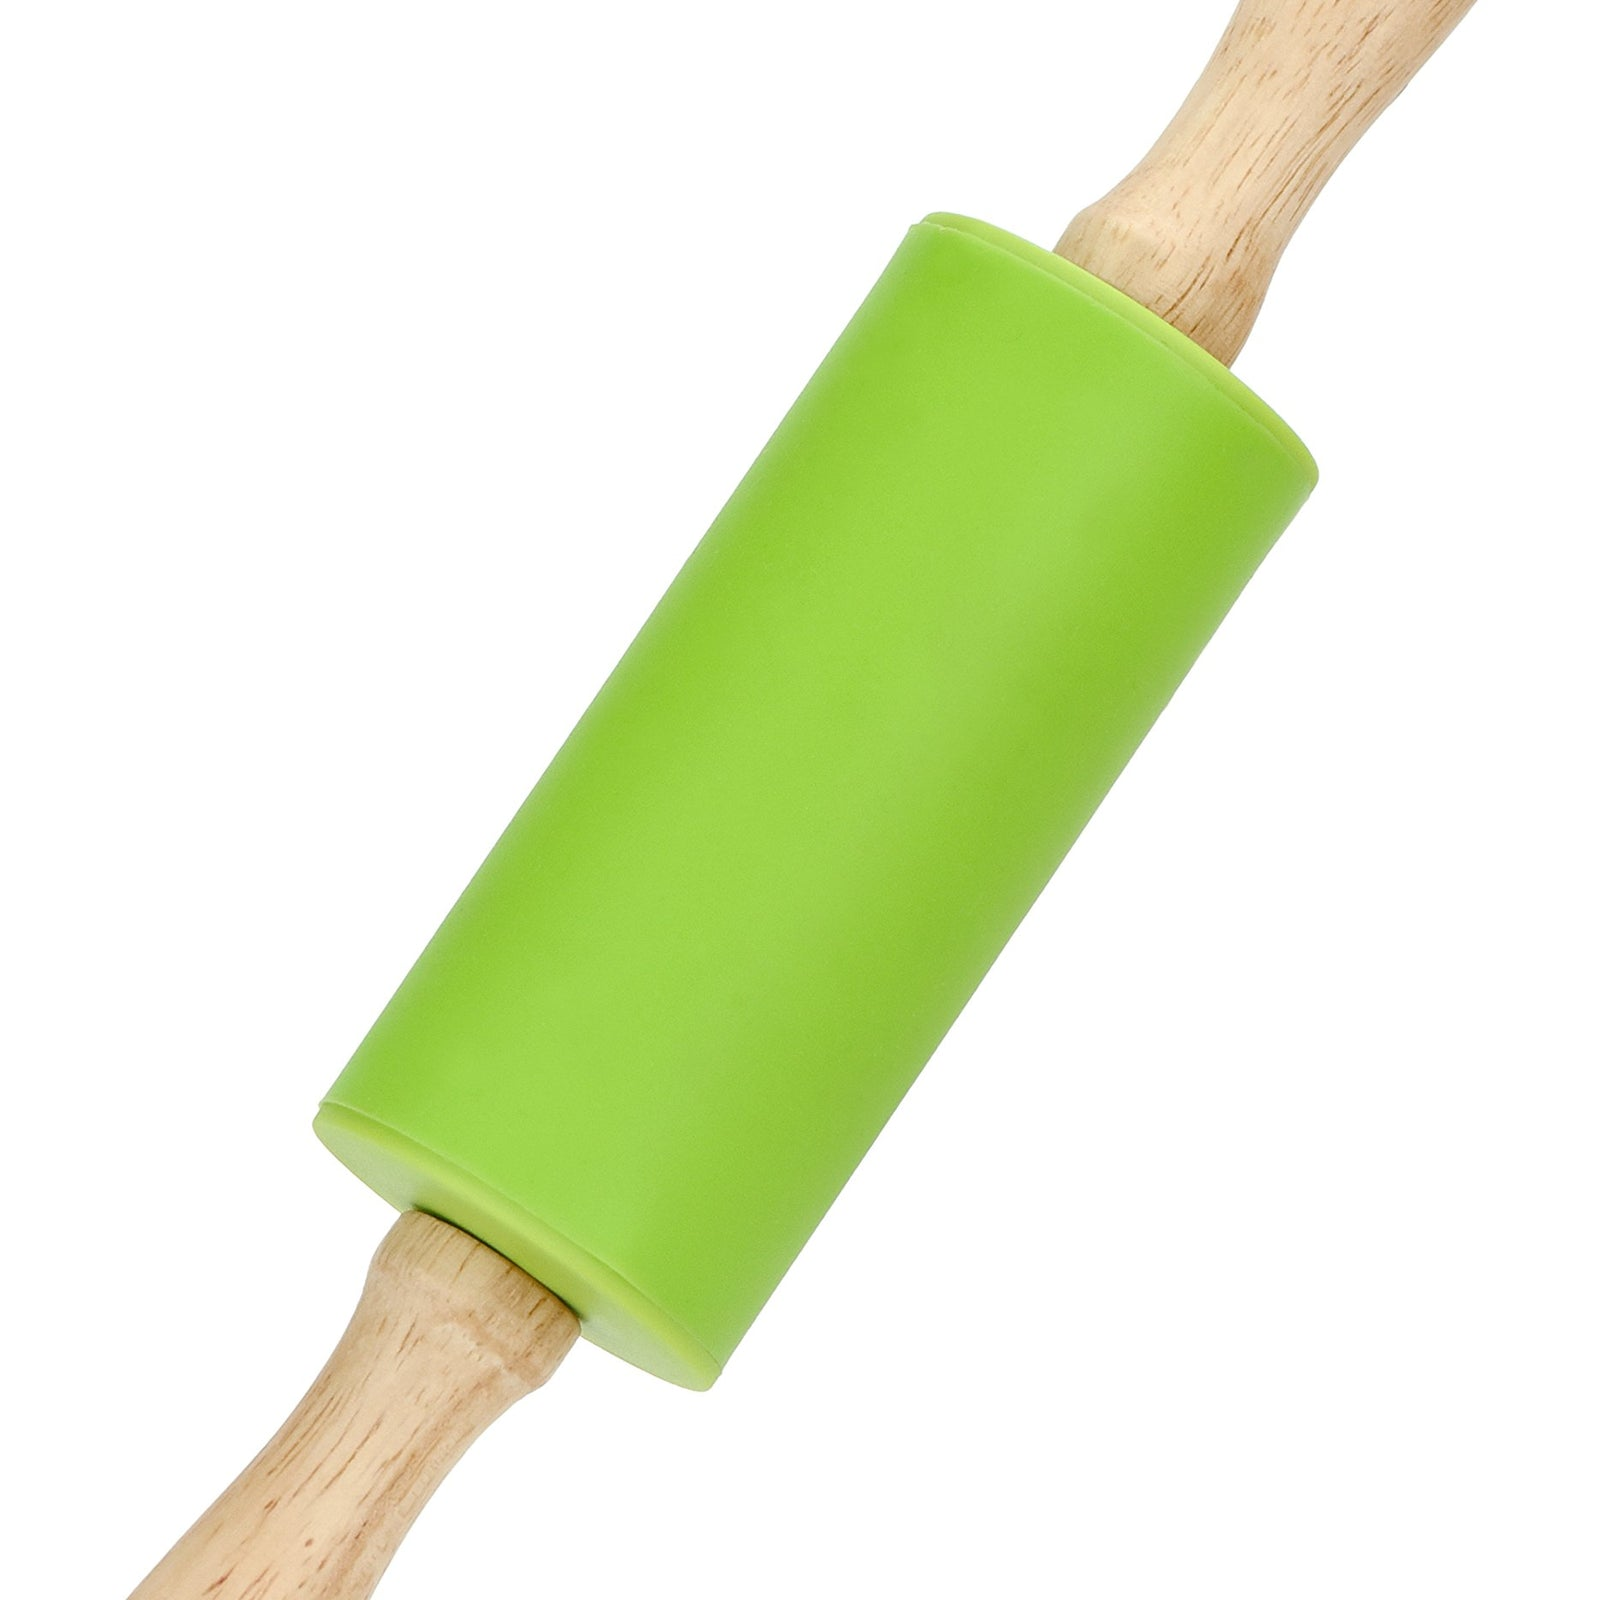 1X Wooden Handle Non-stick Silicone Rolling Pin Dough Roller Kitchen Tools RU